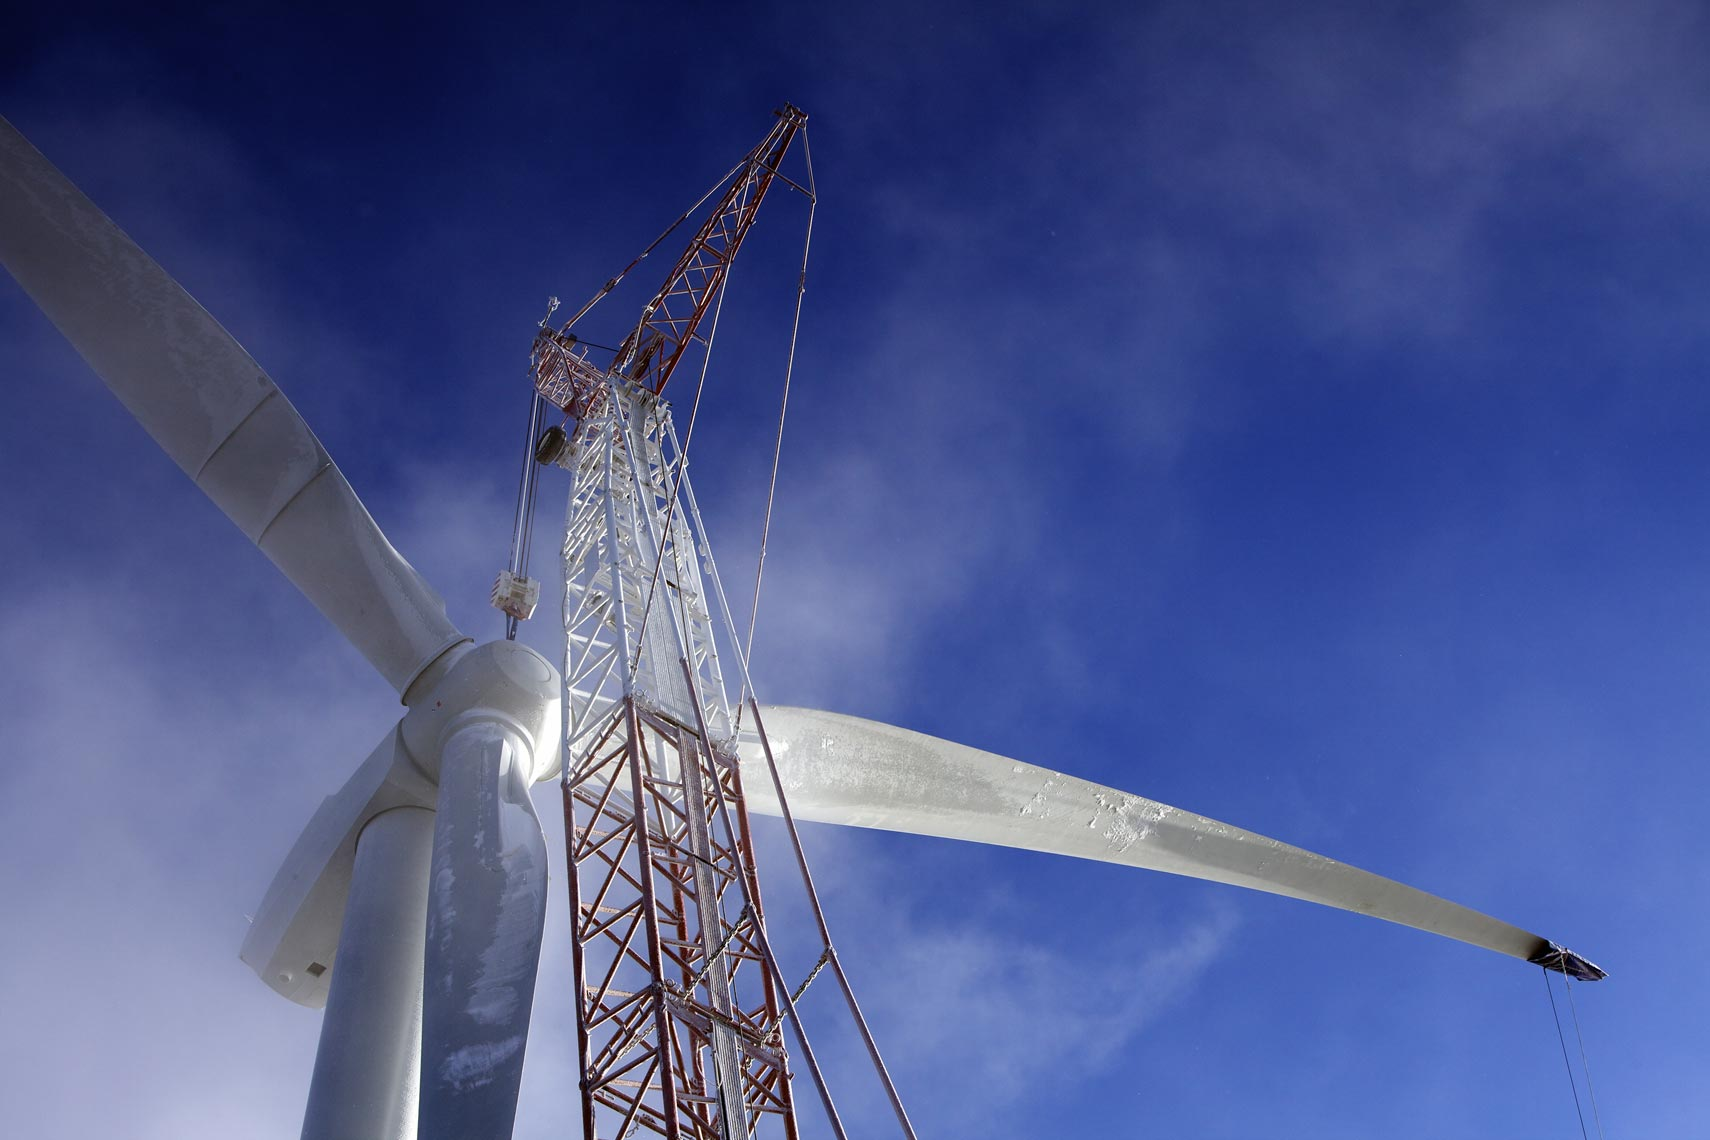 wind-construction-blades-21.jpg